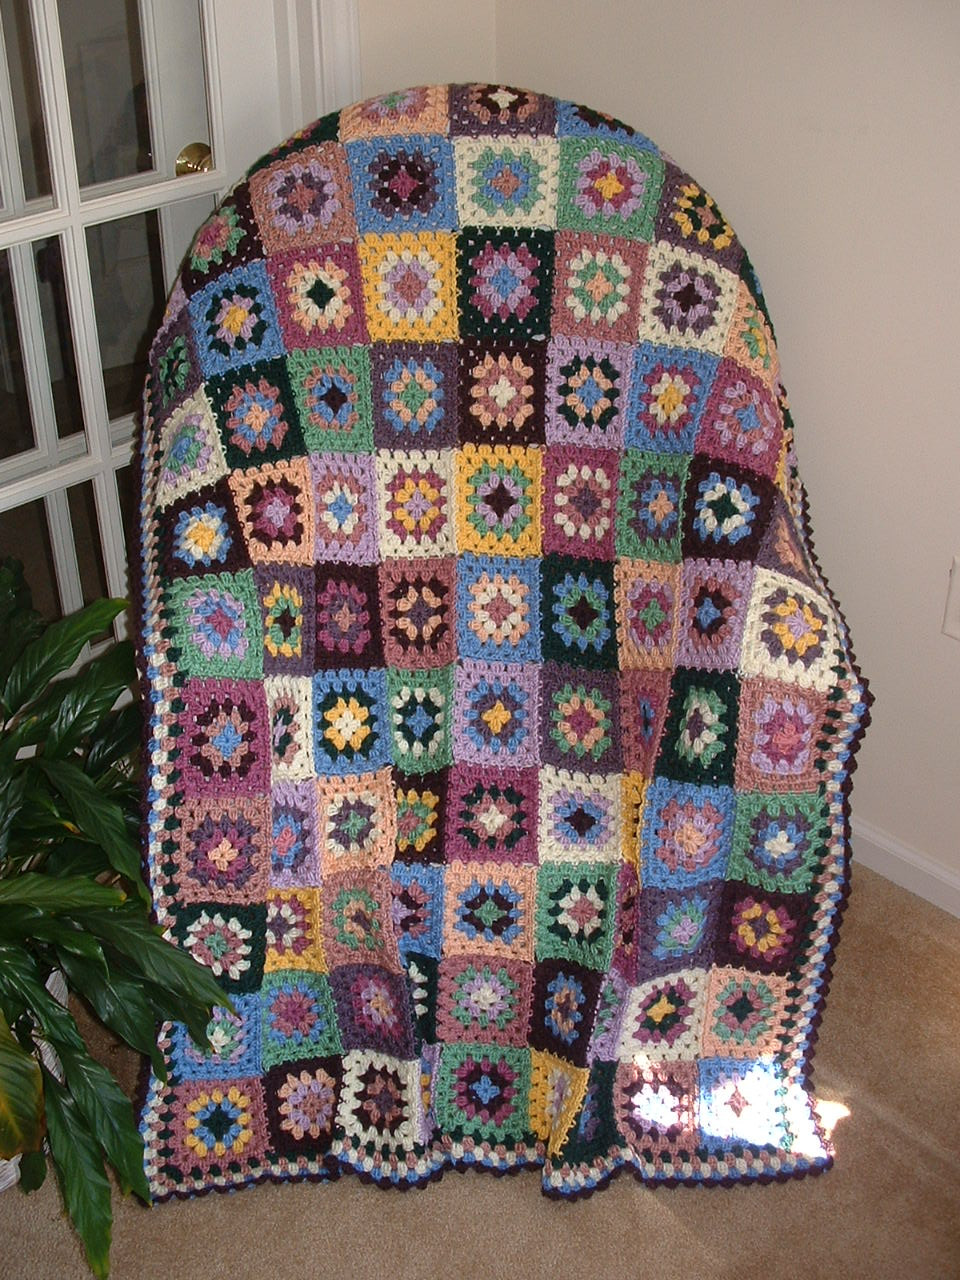 Free Granny Square Afghan Patterns Beautiful Afghan Baby Crochet Free Granny Pattern Square – Crochet Of Amazing 46 Pictures Free Granny Square Afghan Patterns